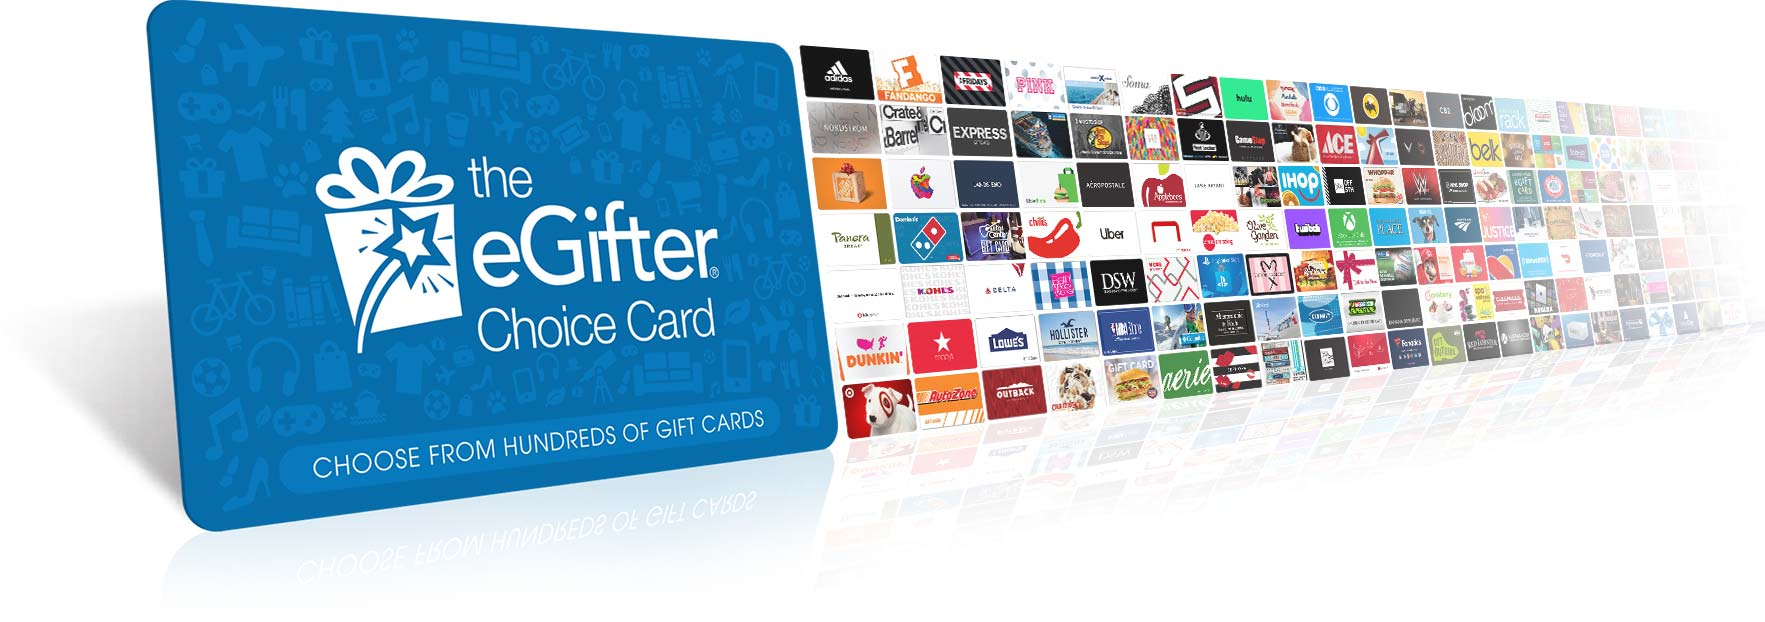 Image of the eGIfter Choice Card with hundreds of smaller gift cards behind it